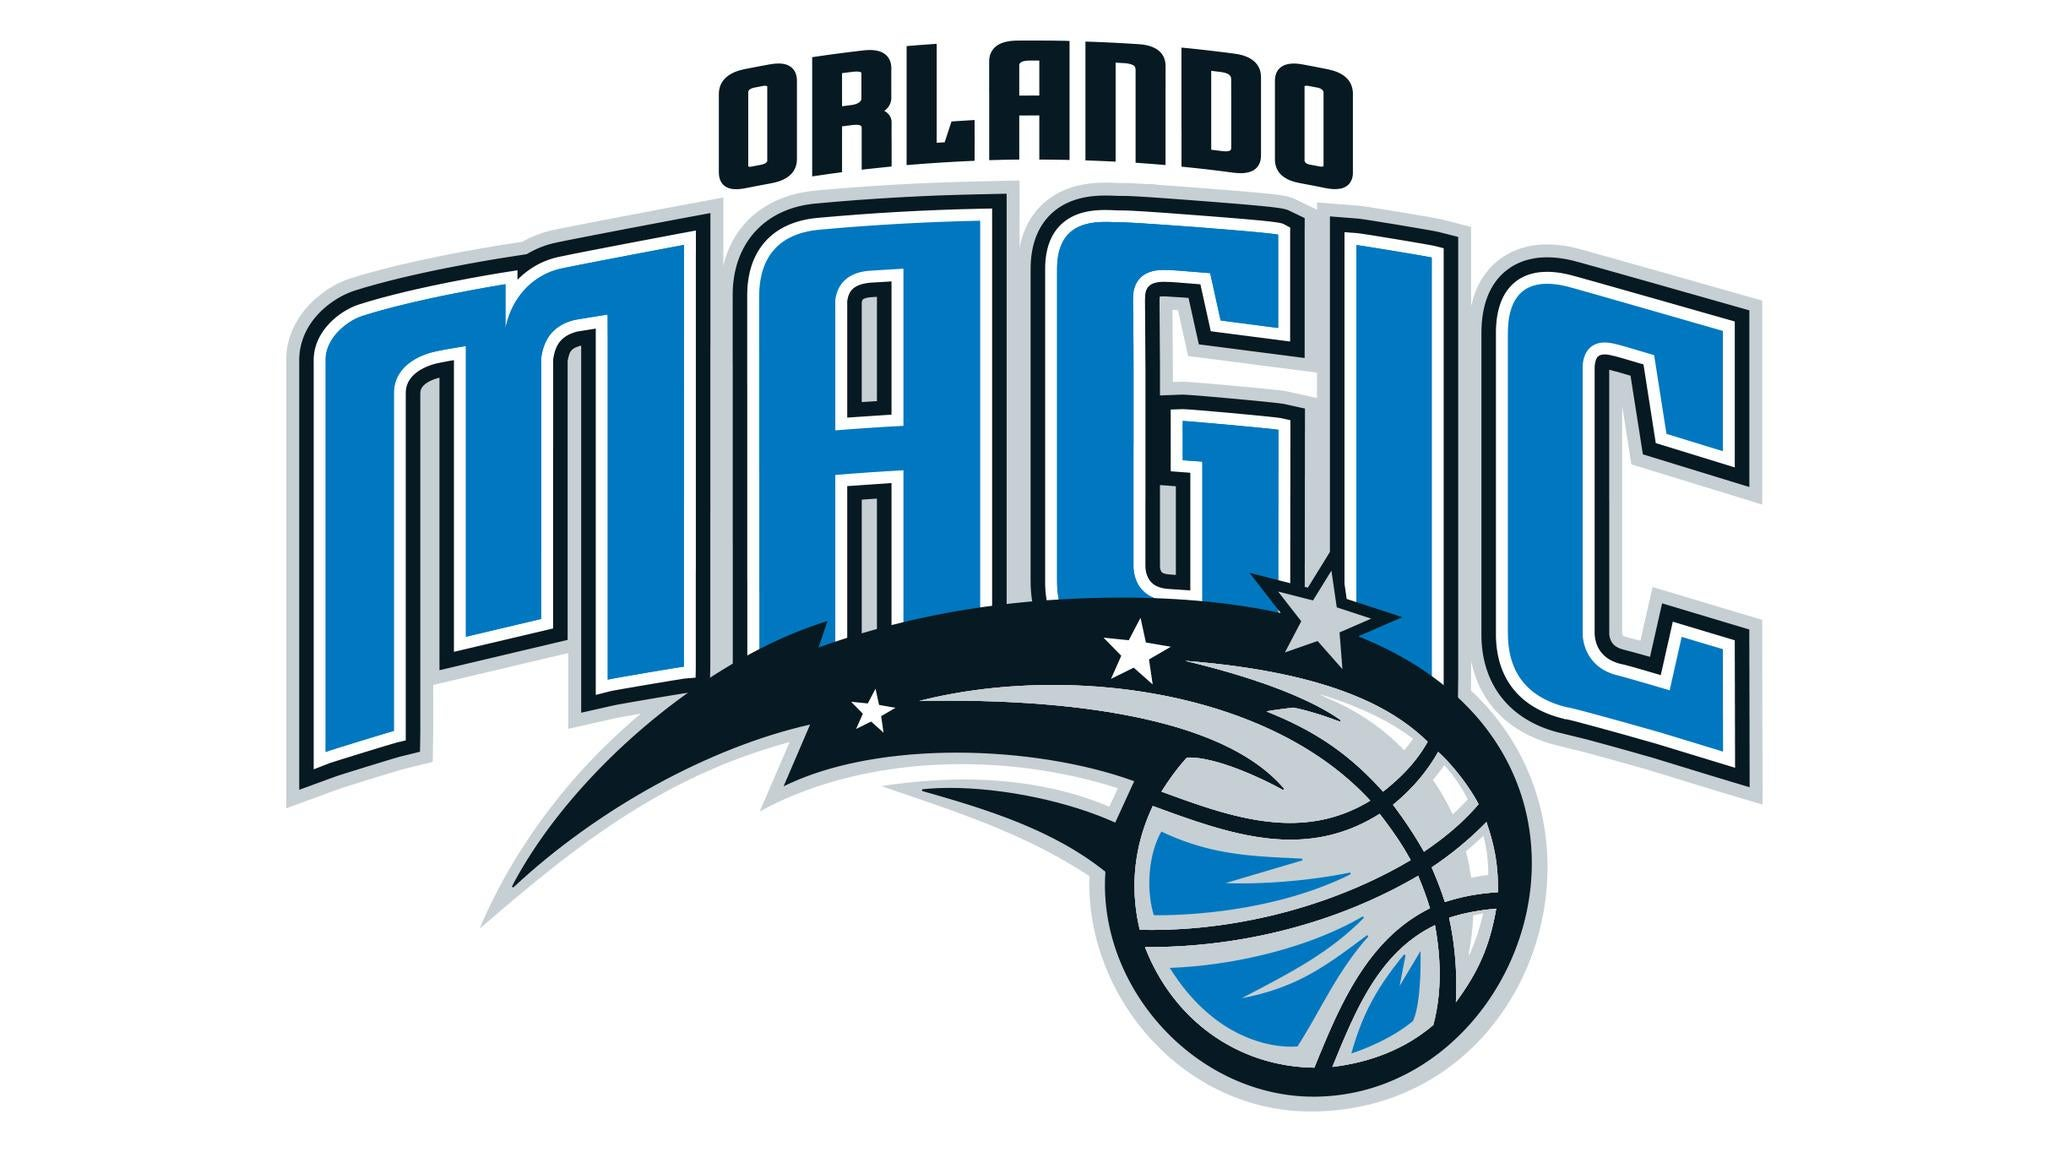 Orlando Magic vs. Miami Heat at Amway Center